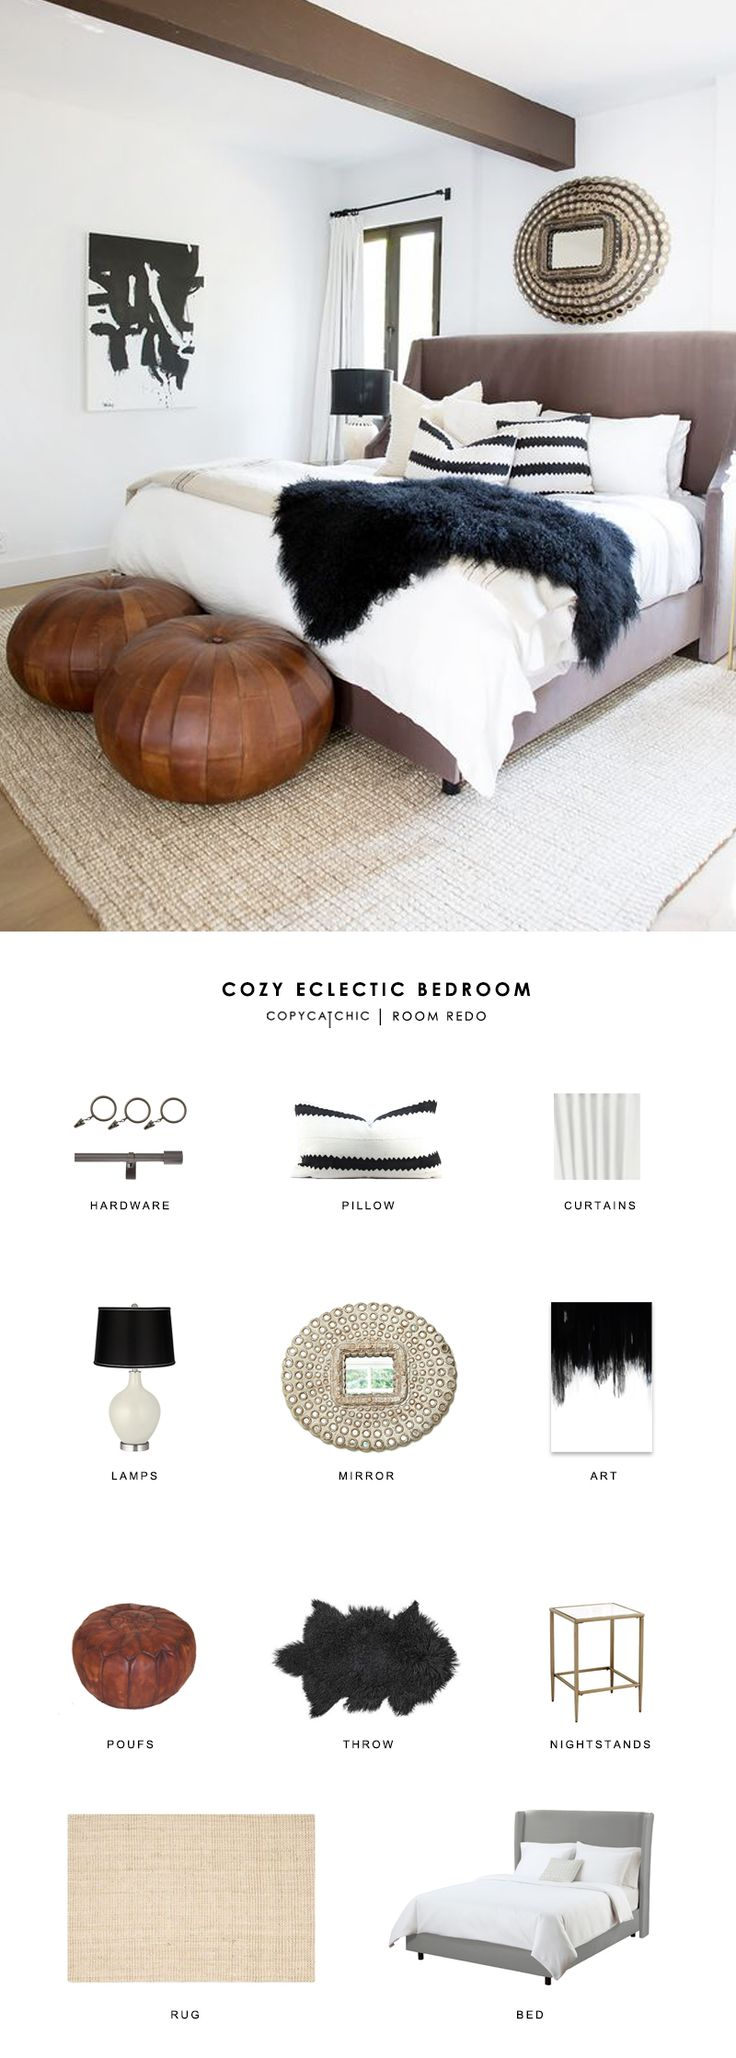 Copy Cat Chic Room Redo | Cozy Eclectic Bedroom | Copy Cat Chic | Bloglovin'